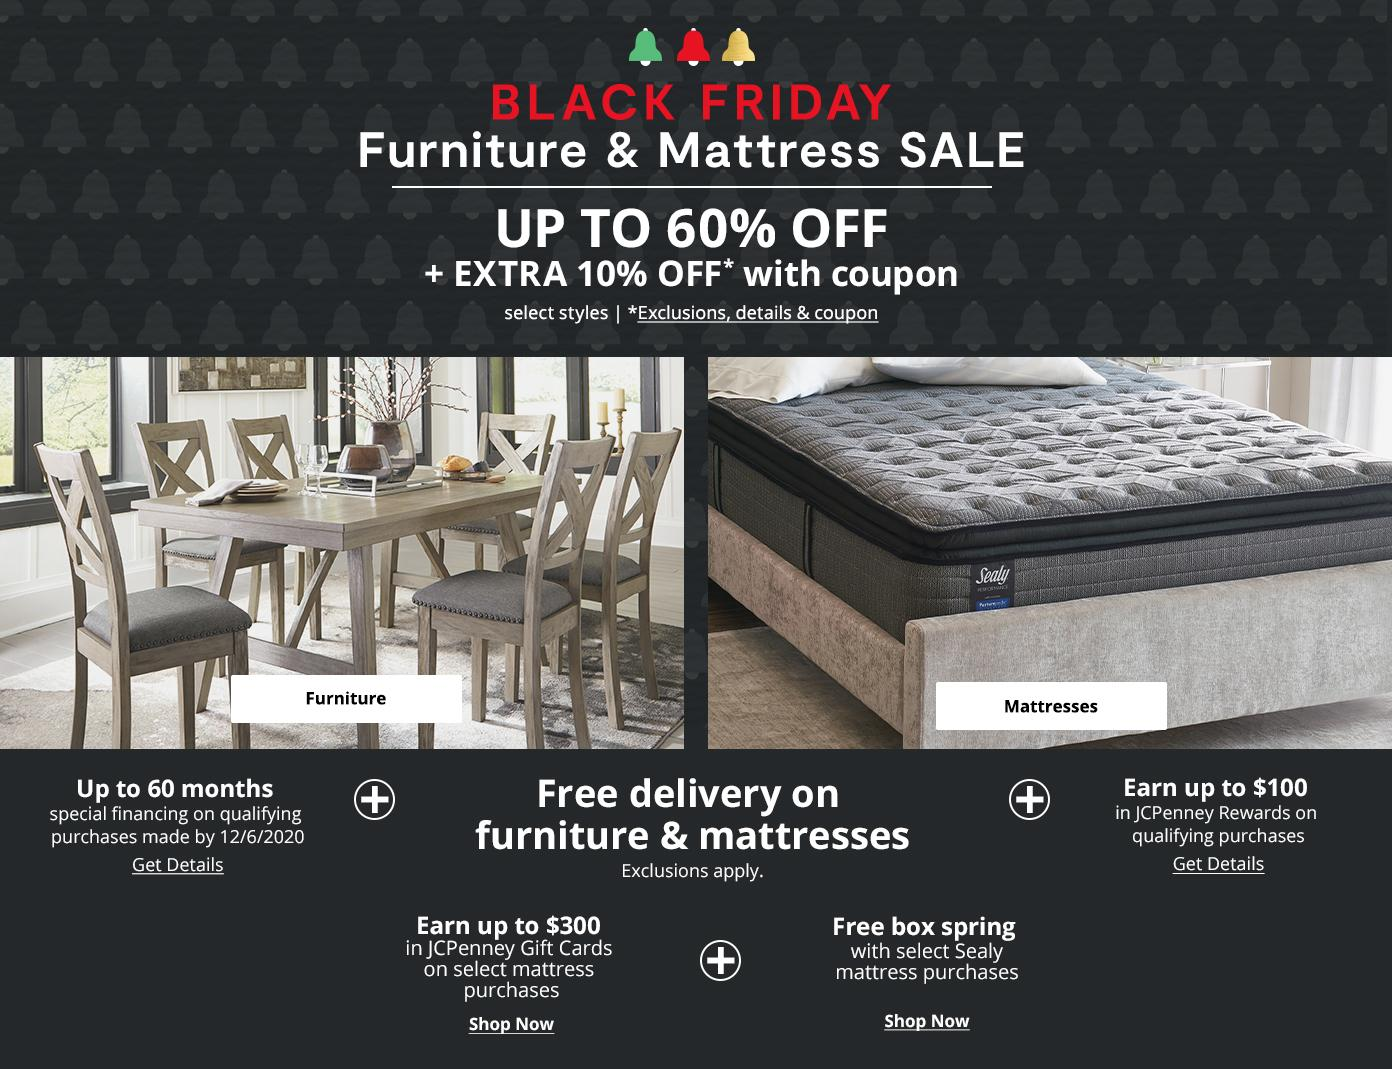 BLACK FRIDAY Furniture & Mattress SALE. UP TO 60% OFF + EXTRA 10% OFF* with coupon, select styles. *Exclusions & details